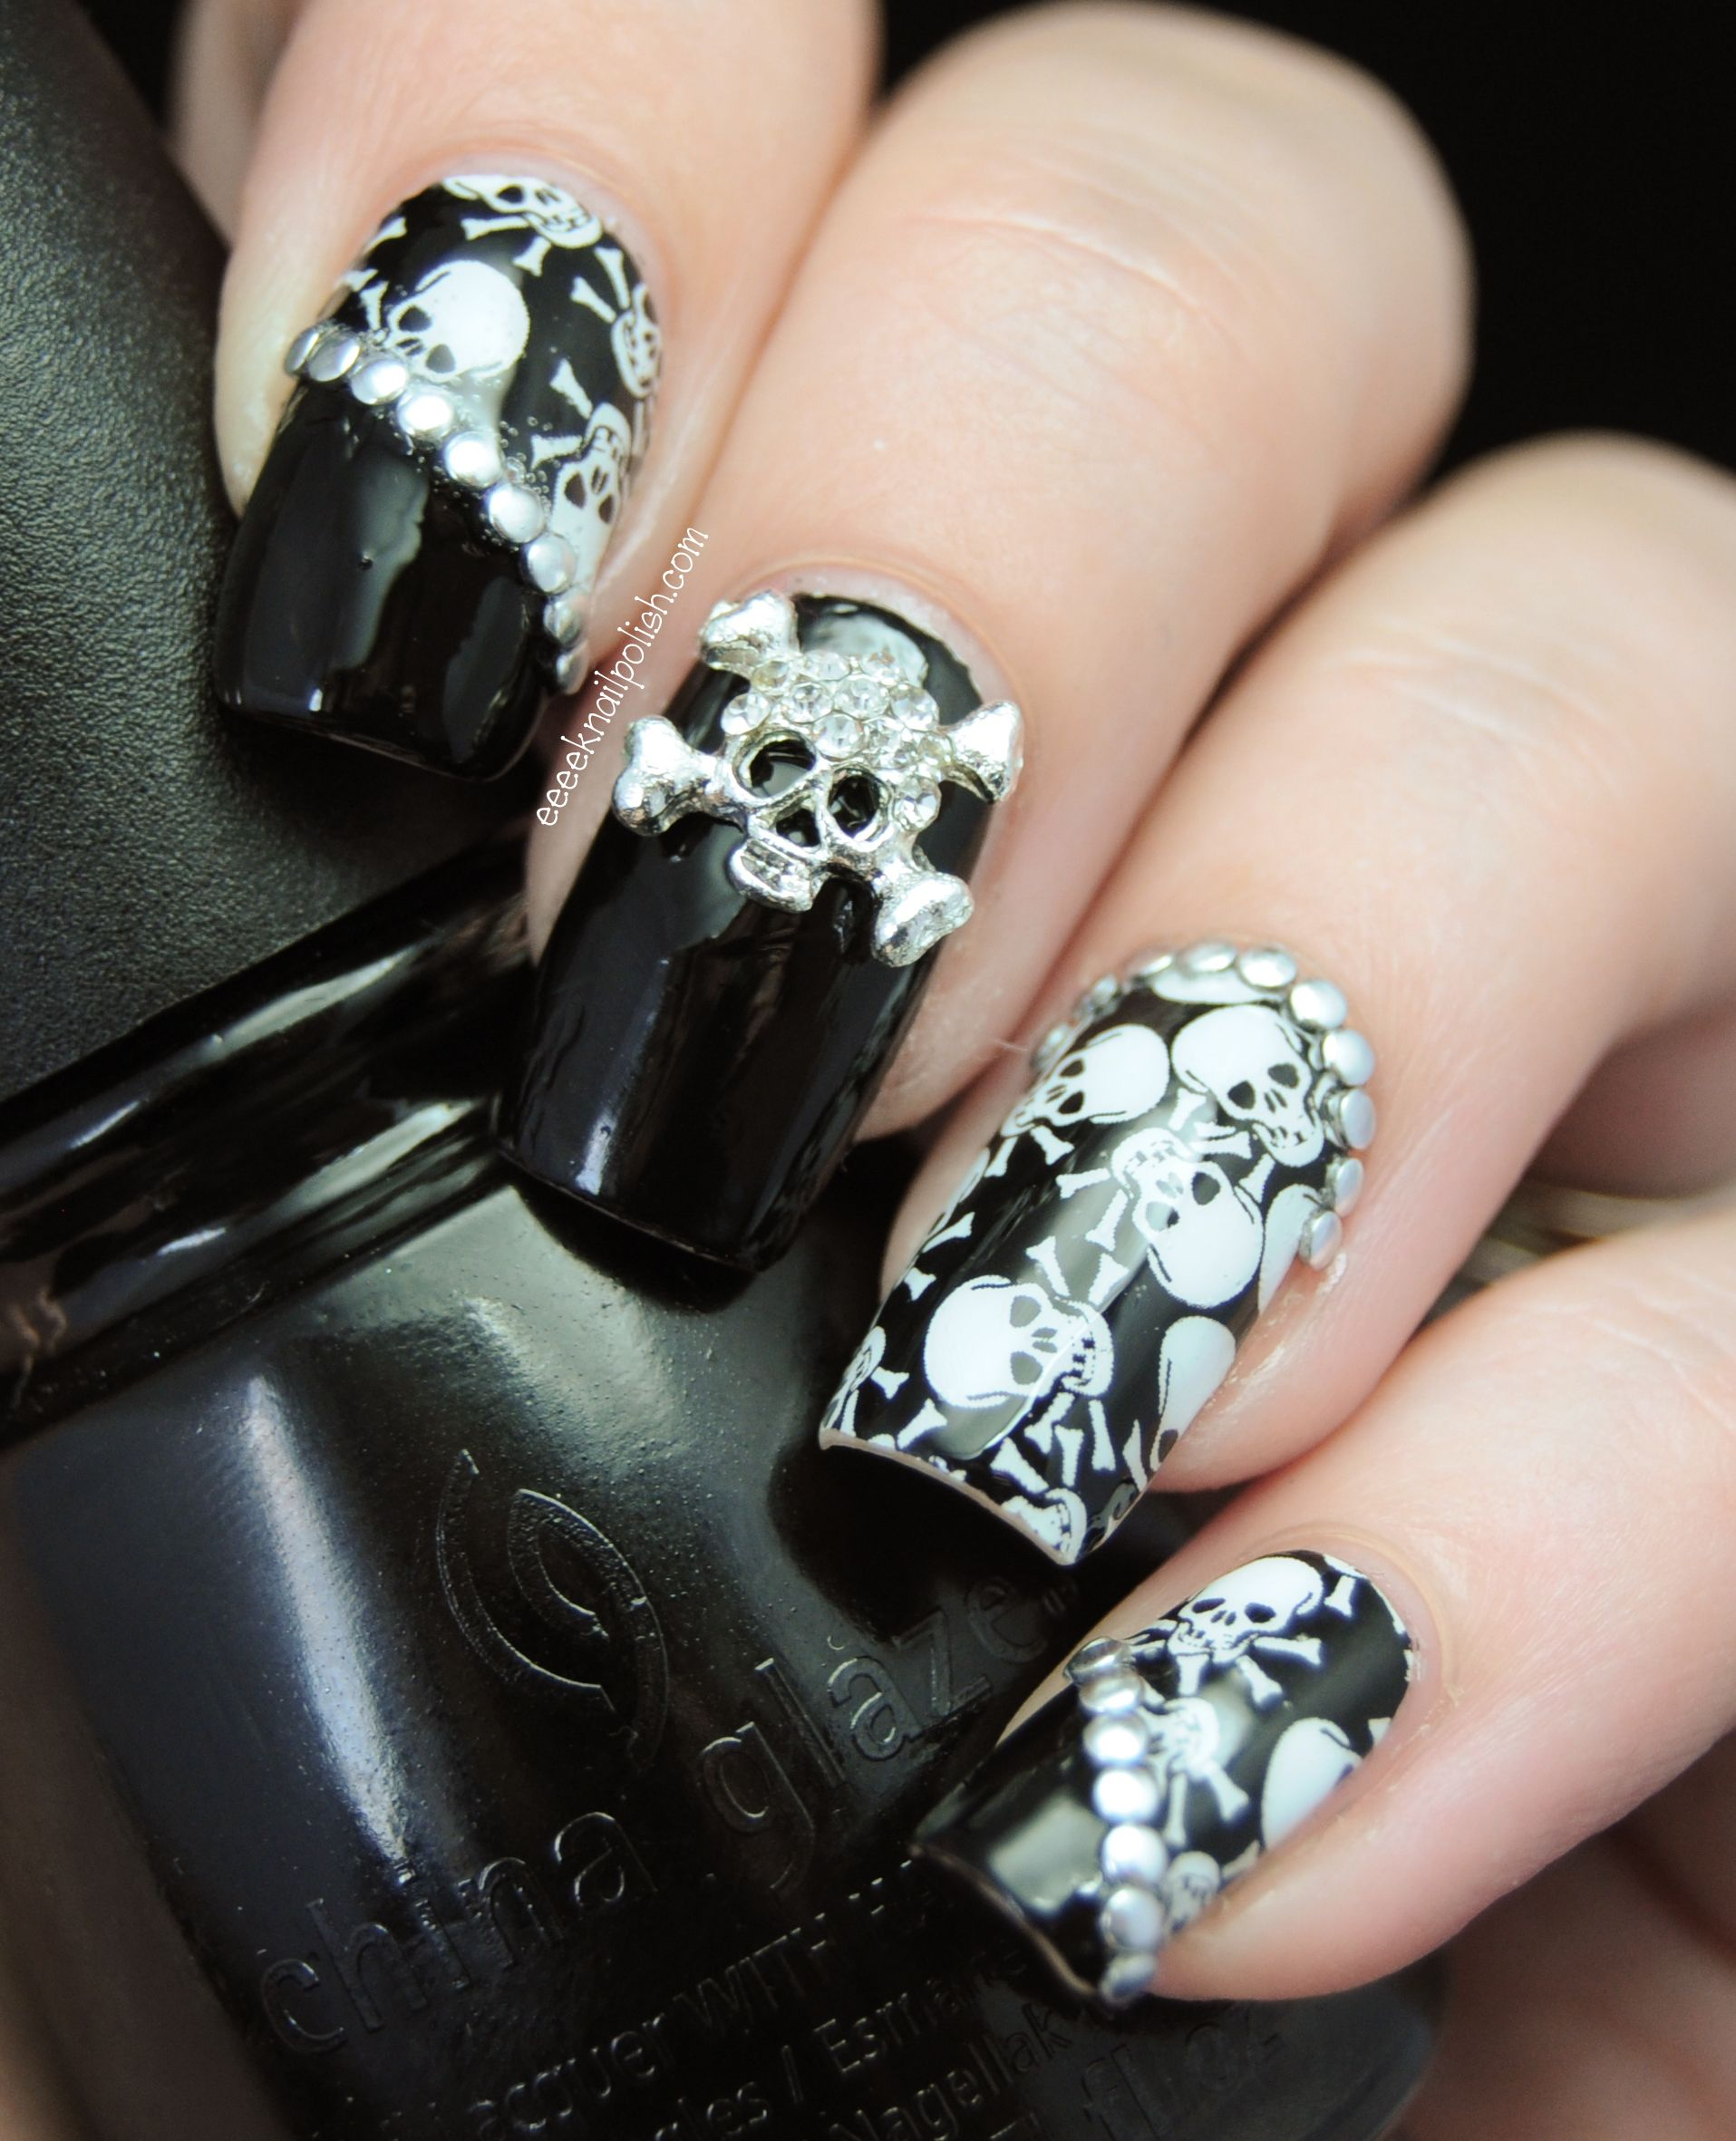 For more amazing gothic nail designs follow our vintage goth board for more amazing gothic nail designs follow our vintage goth board http prinsesfo Image collections